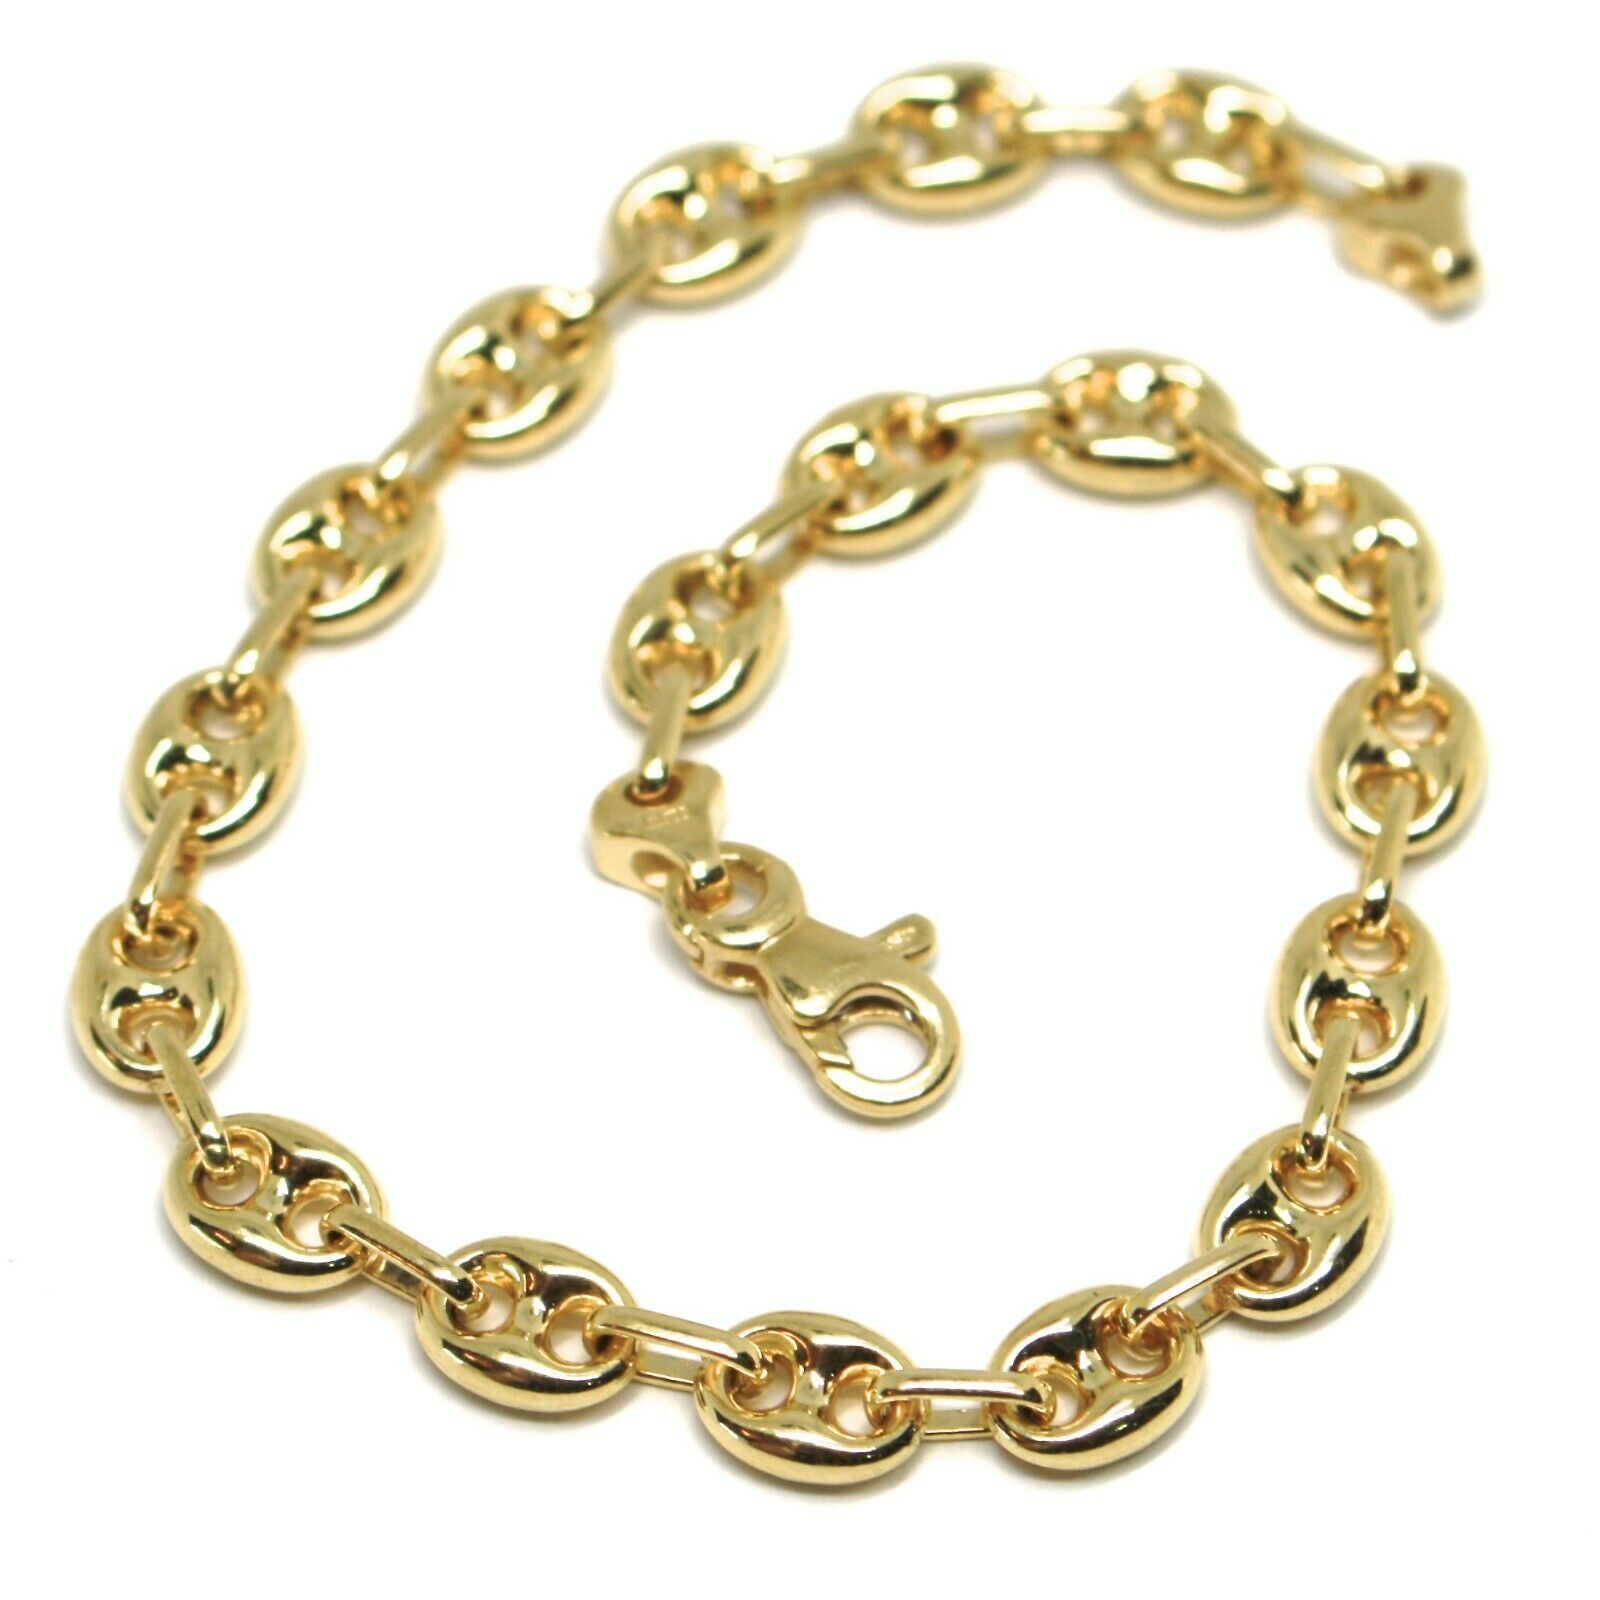 18K YELLOW GOLD SOLID MARINER BRACELET BIG 6 MM, 8.3 INCHES, ANCHOR ROUNDED LINK